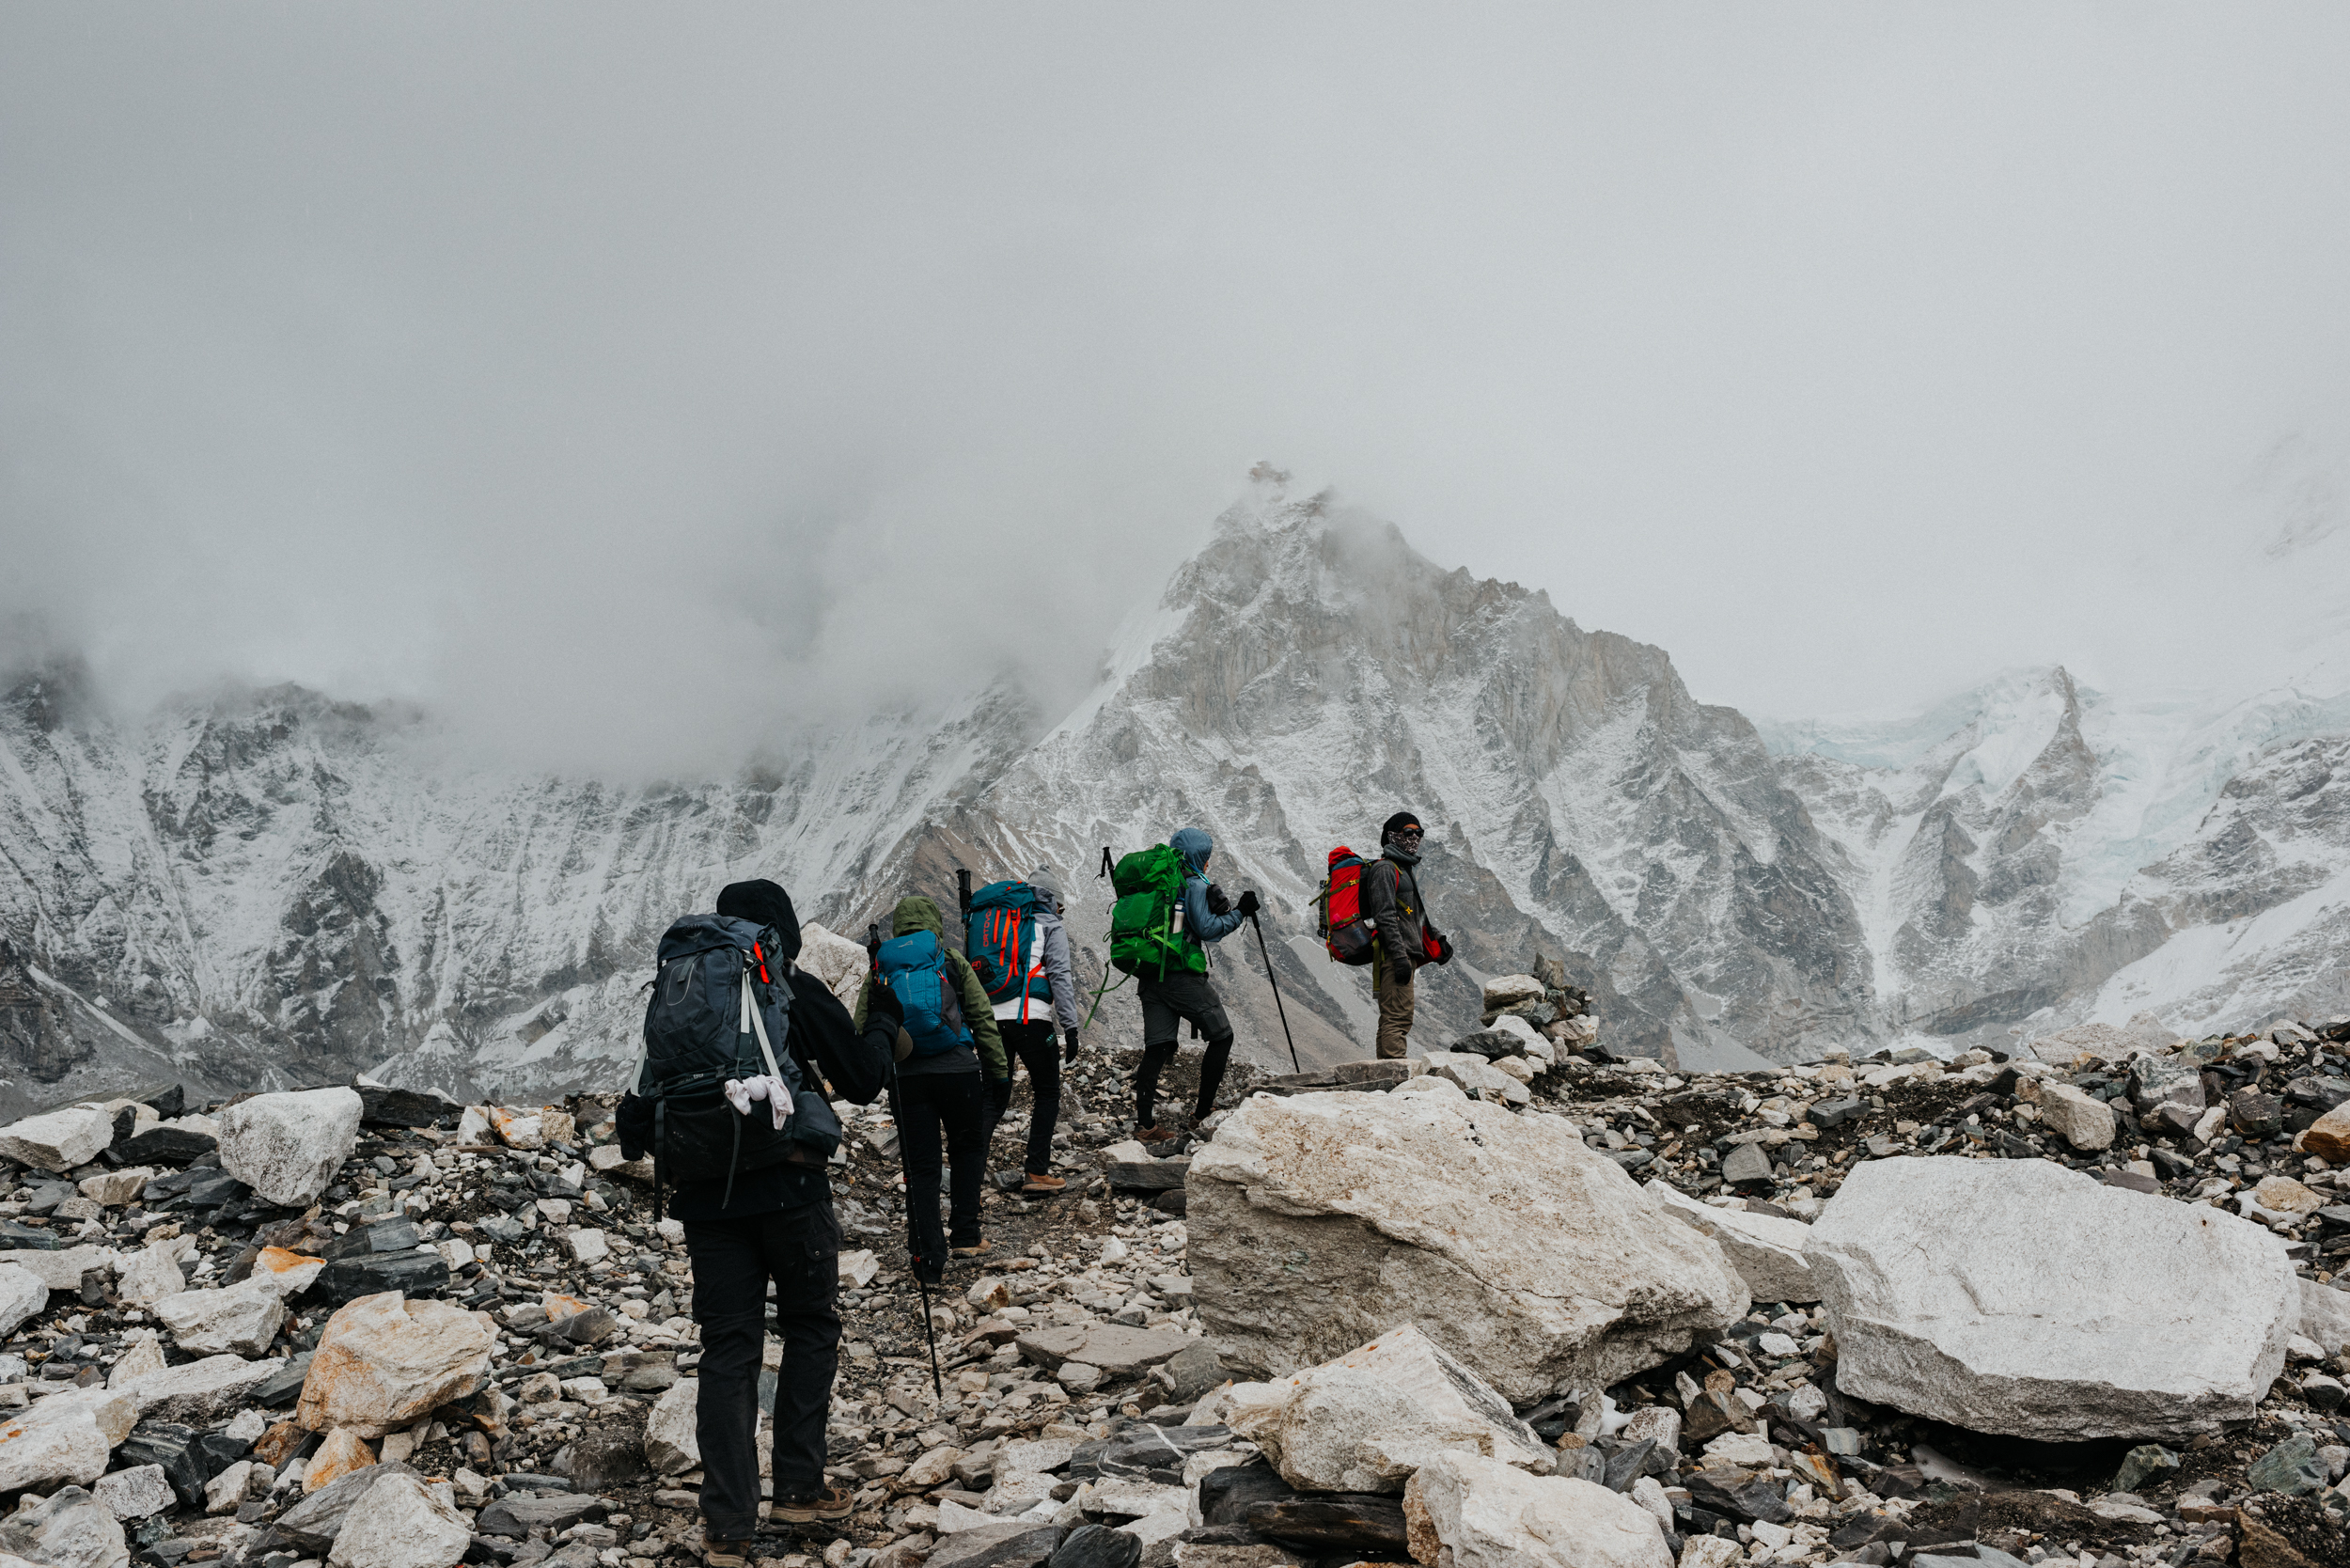 Nepal_EverestBaseCamp_2019_TaraShupe_Photography_DSC_4212.jpg